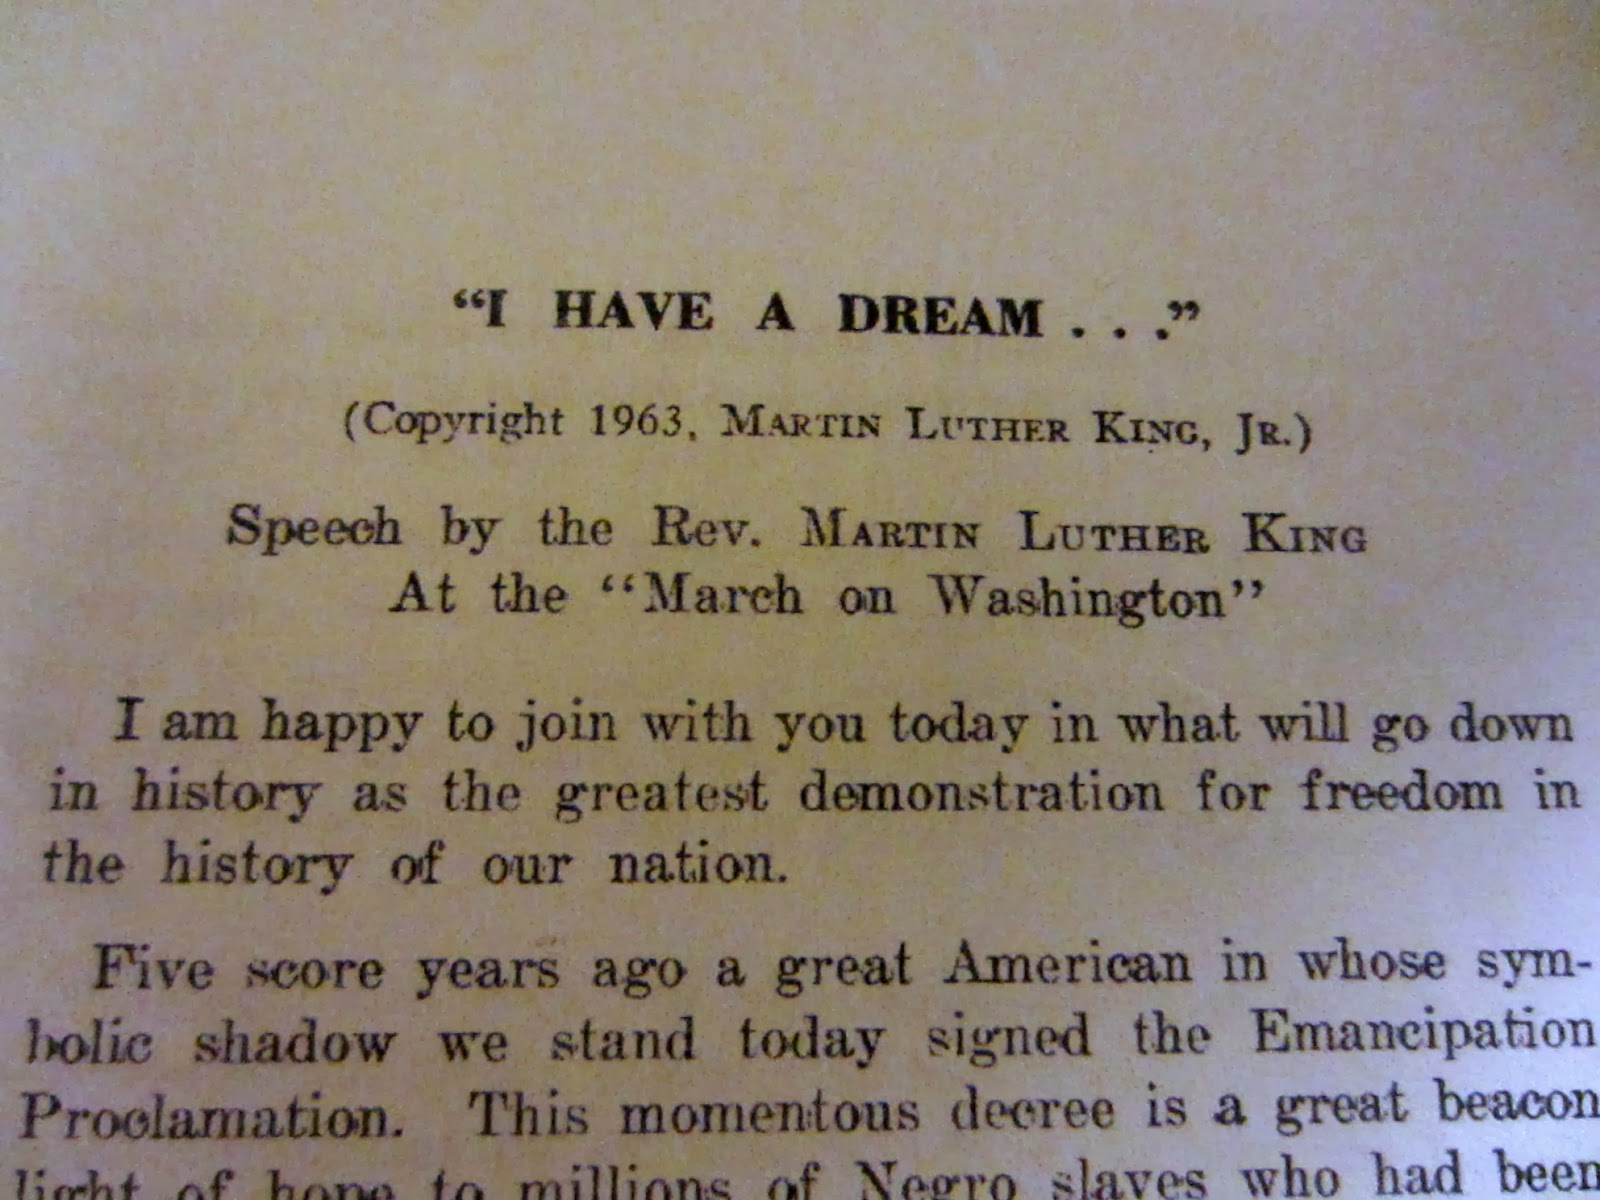 I have a dream speech essay introduction